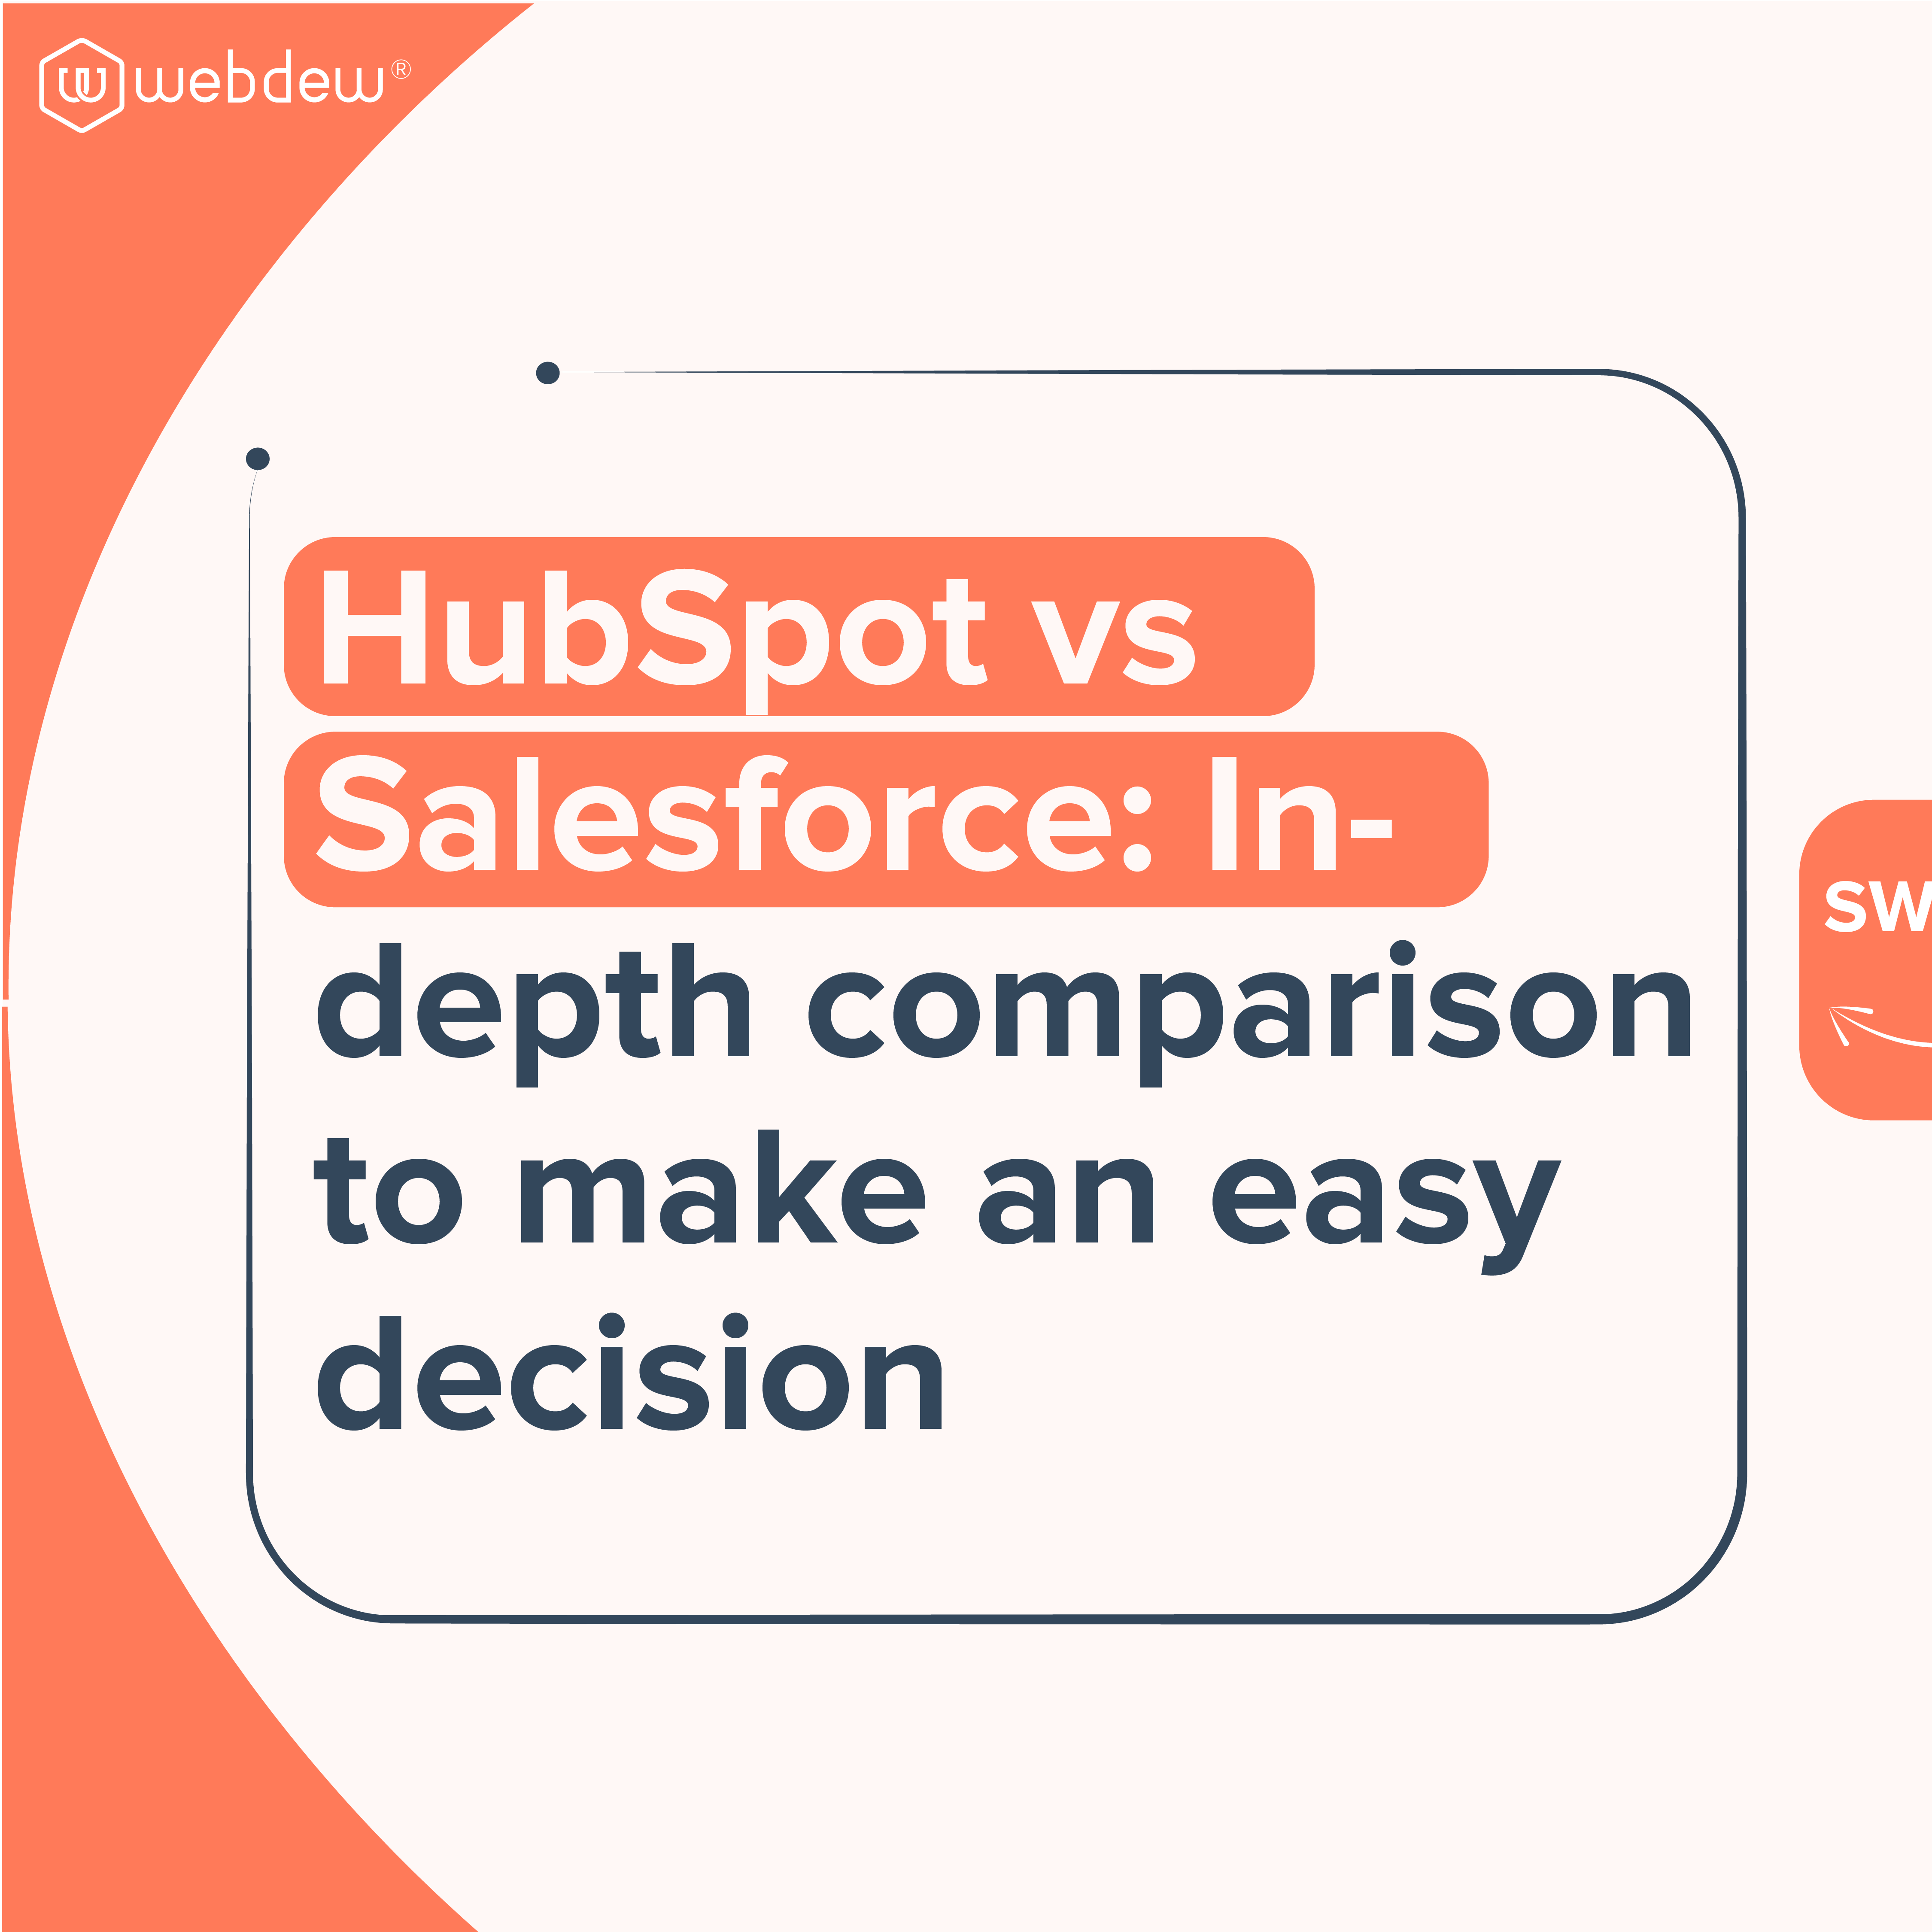 hubspot vs salesforce in deph comparison to make an easy decision-01 (1)